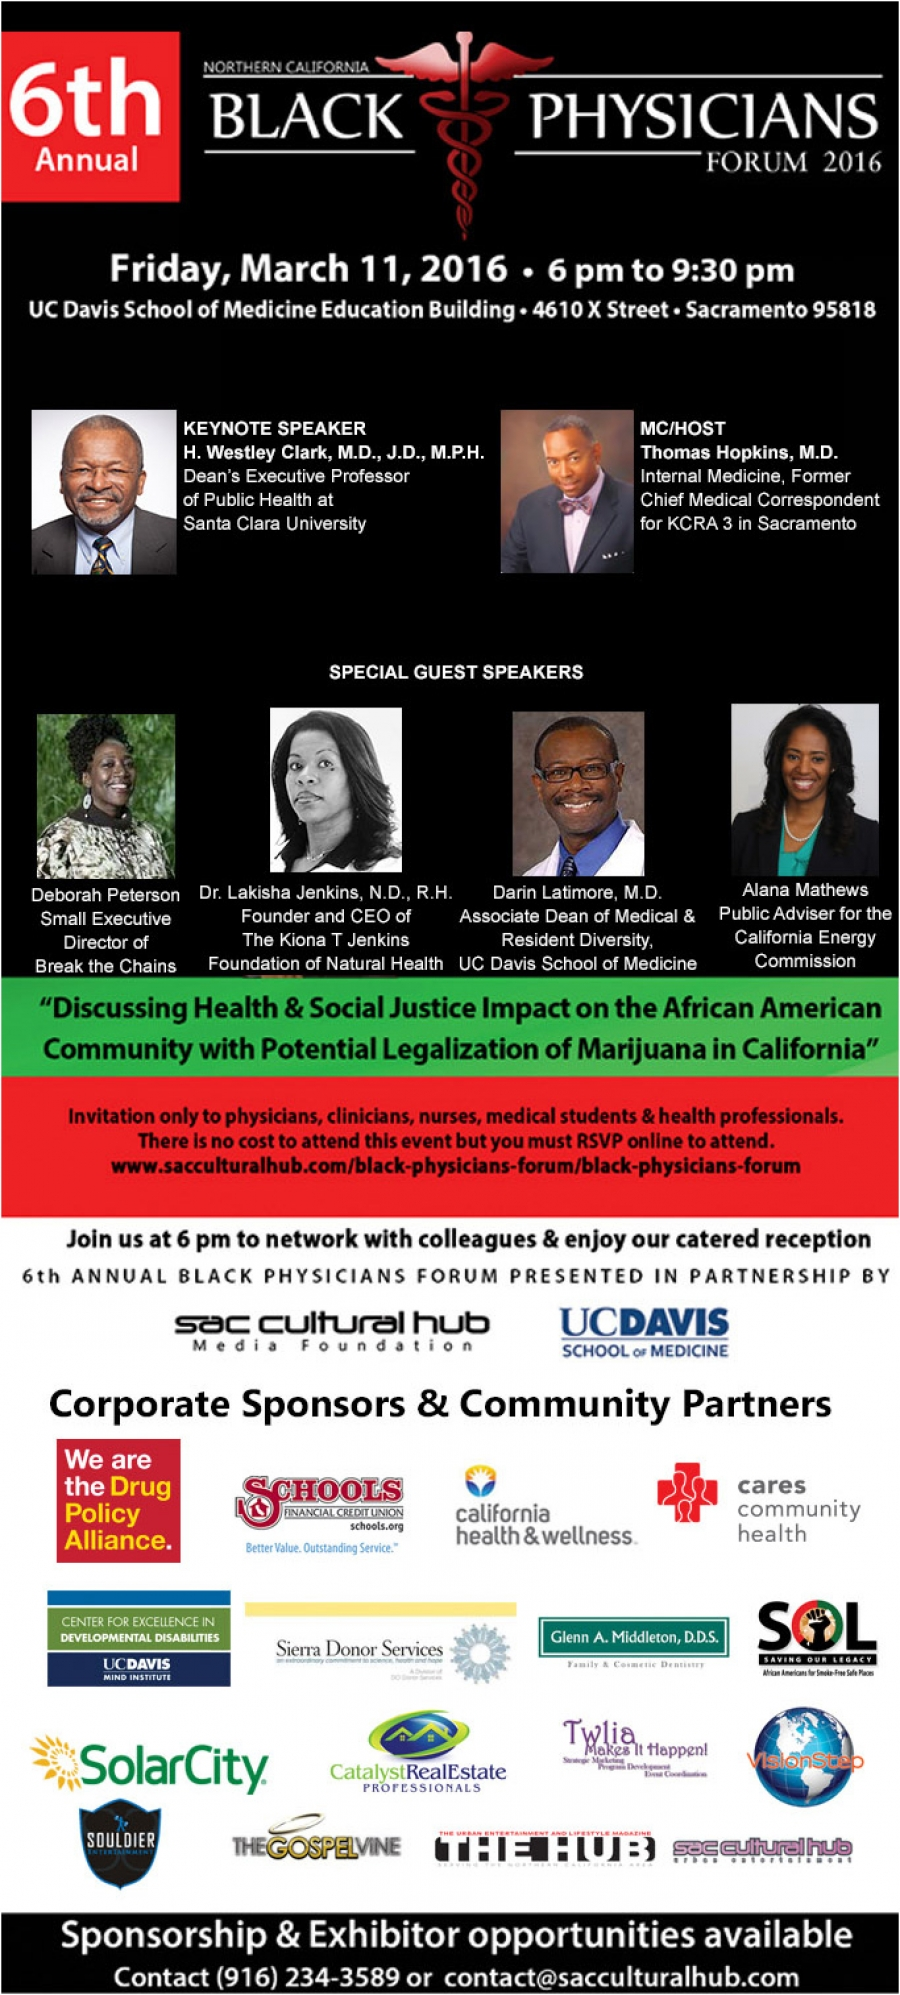 Join us for 6th Annual Black Physicians Forum - Friday, March 11, 2016